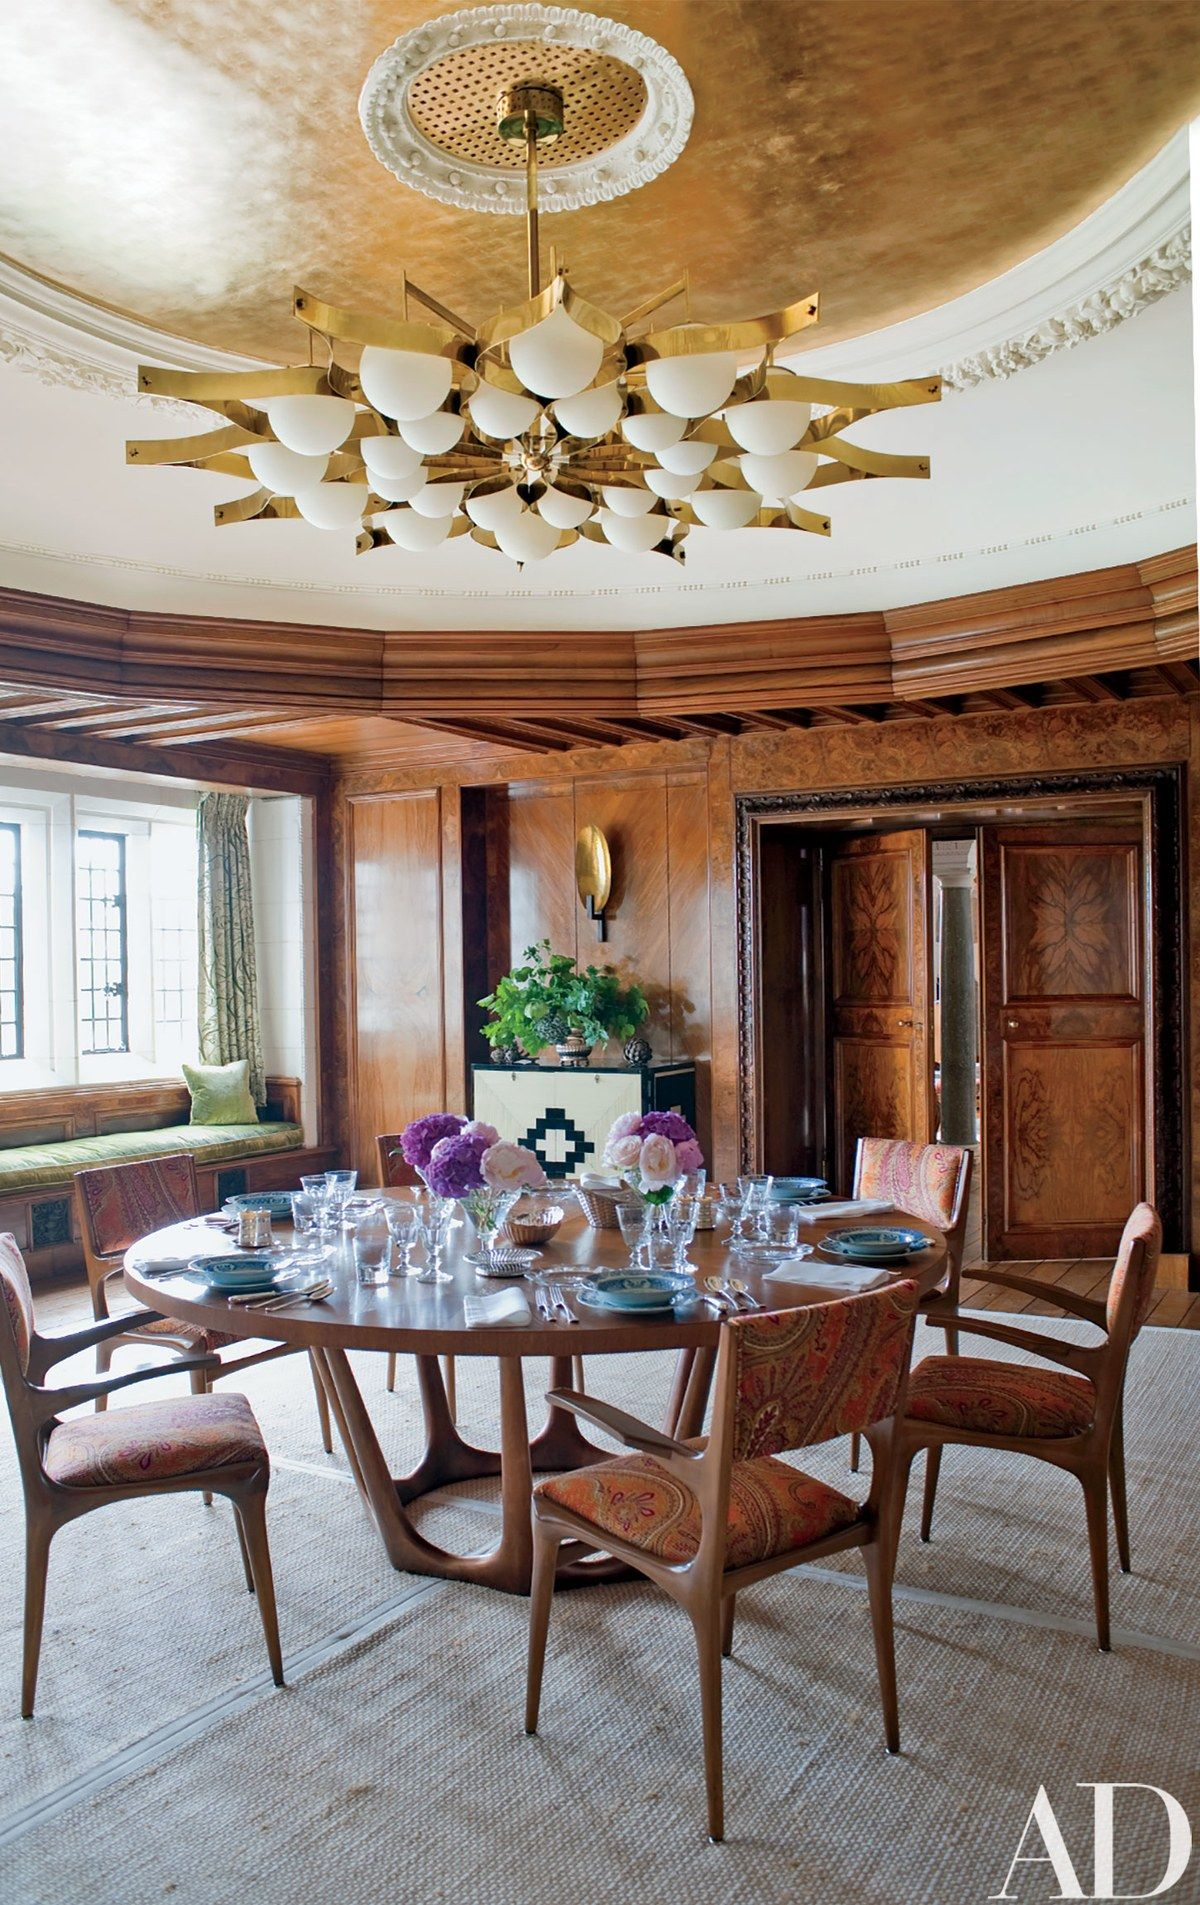 The Dining Room's Brassandfrostedglass Light Fixture Is A 1964 Magnificent The Dining Rooms Decorating Inspiration